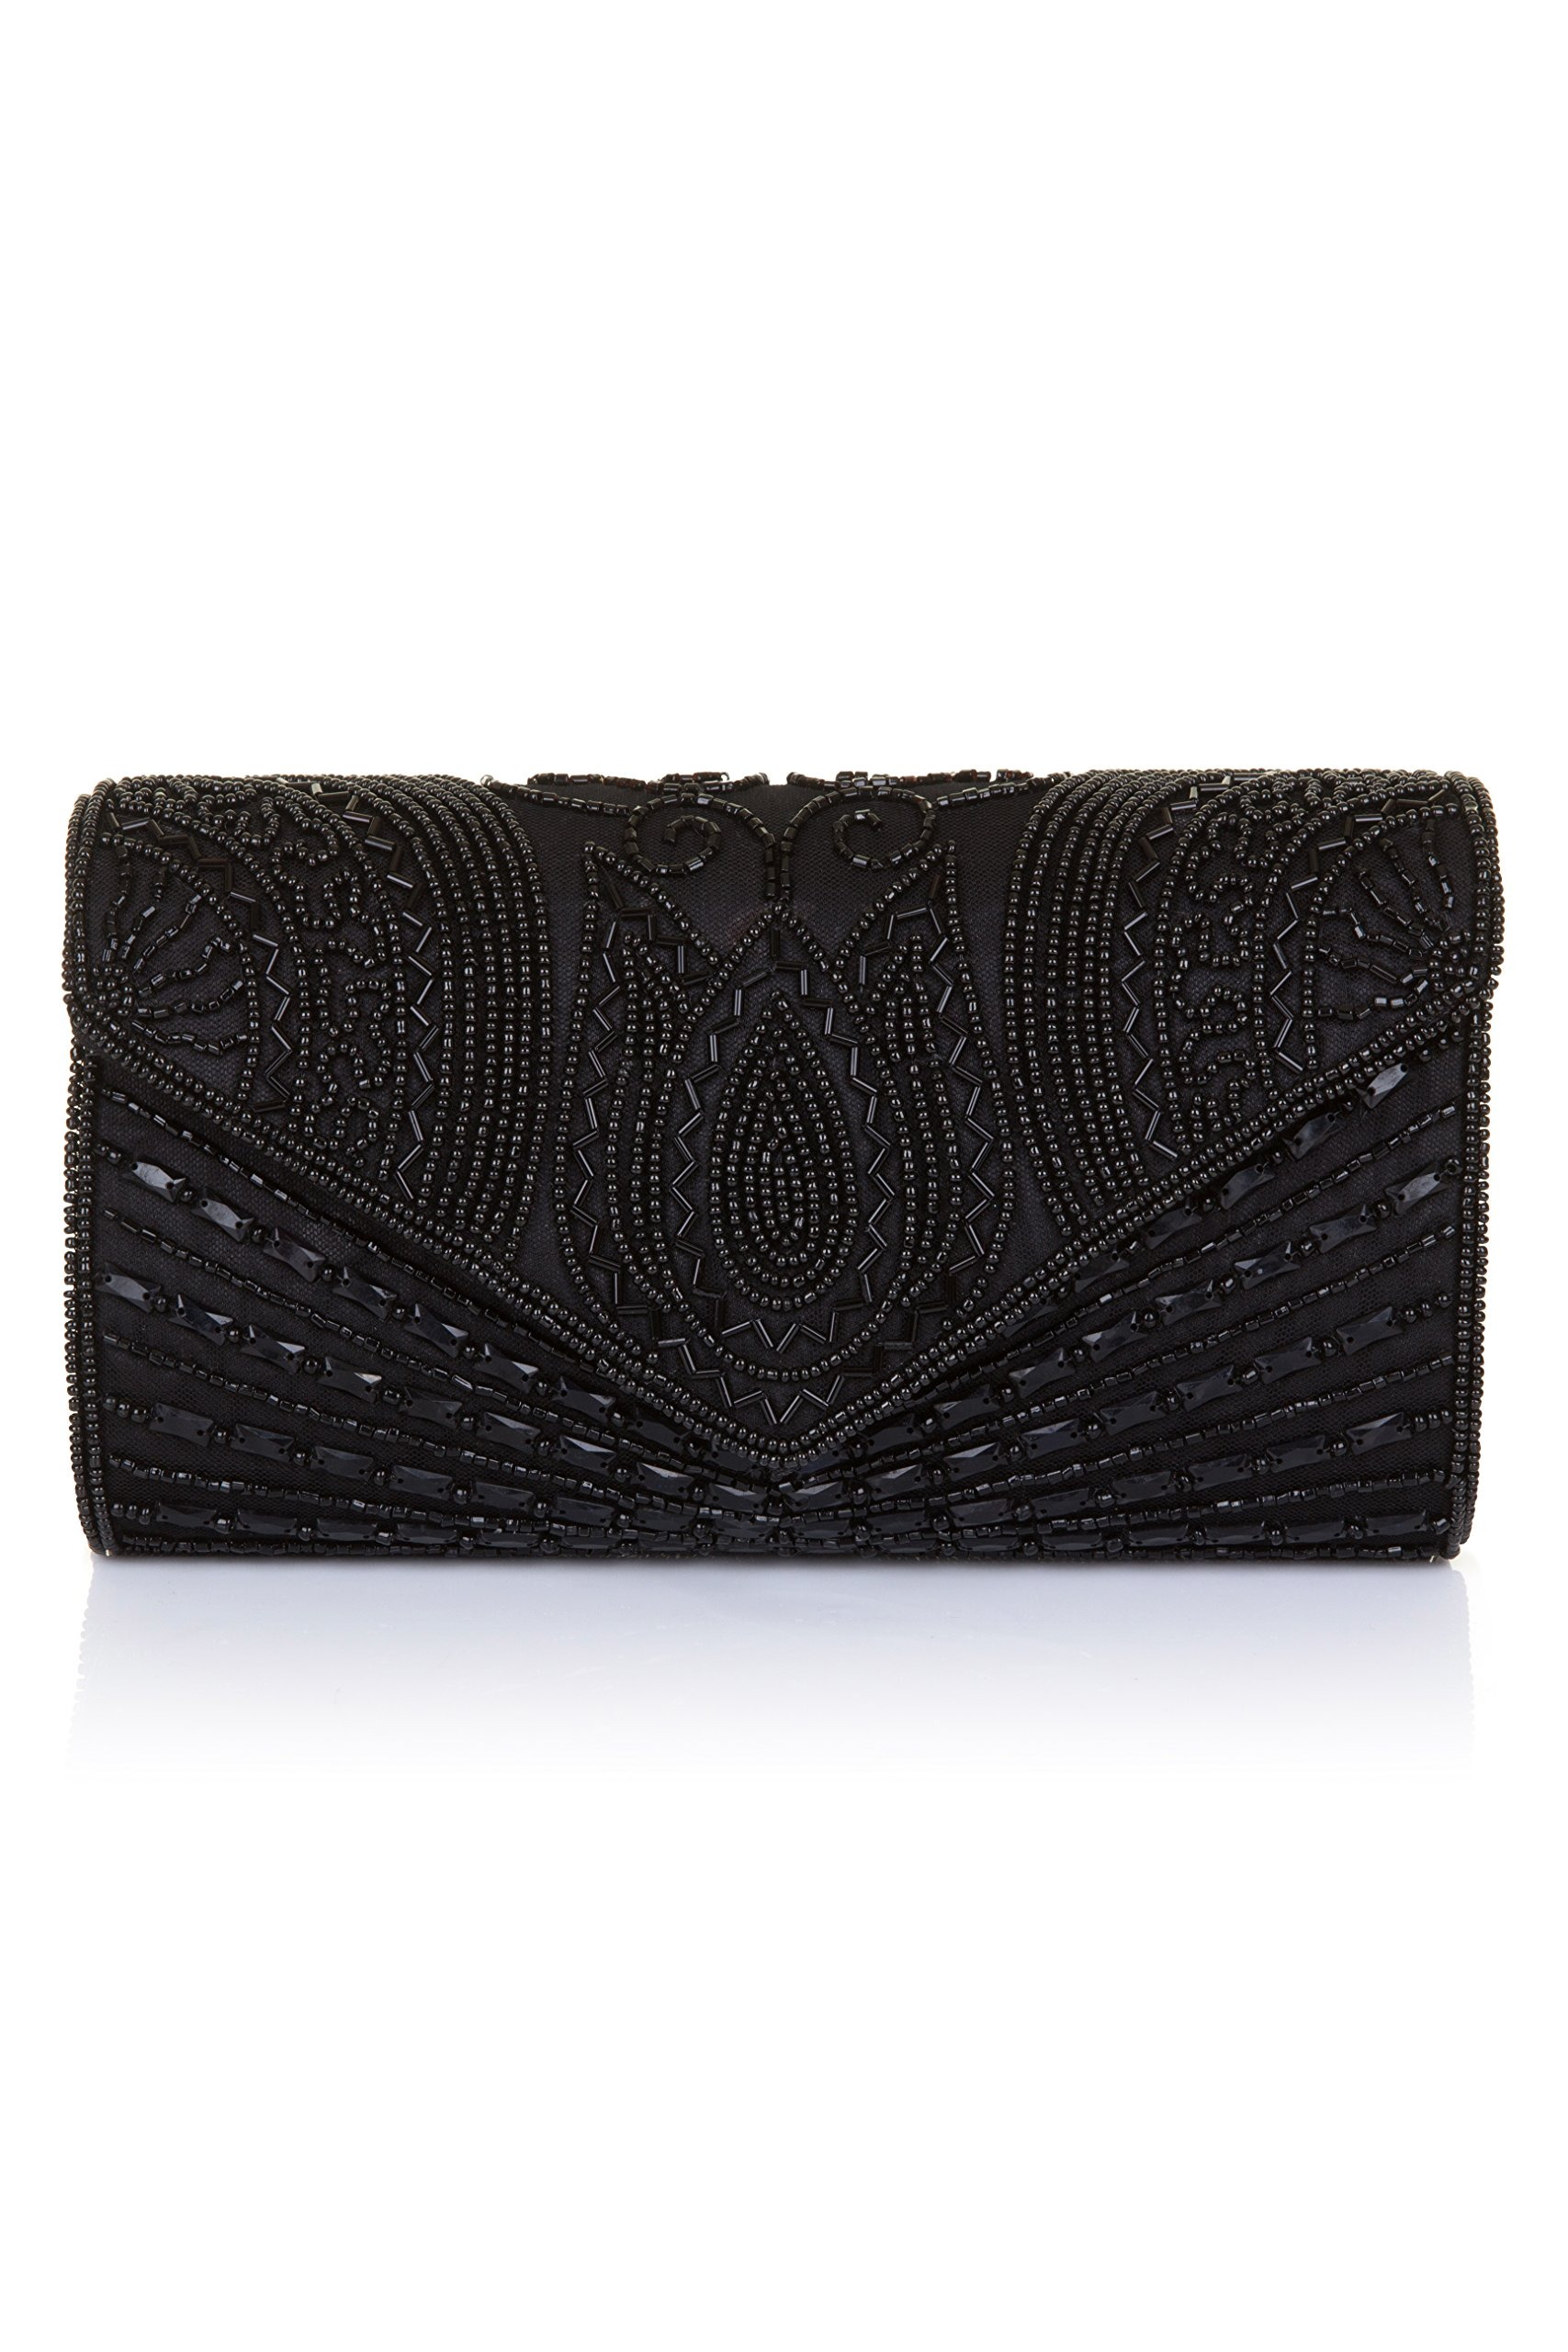 Beatrice Vintage Inspired Hand Embellished Clutch Bag in Black by gatsbylady london